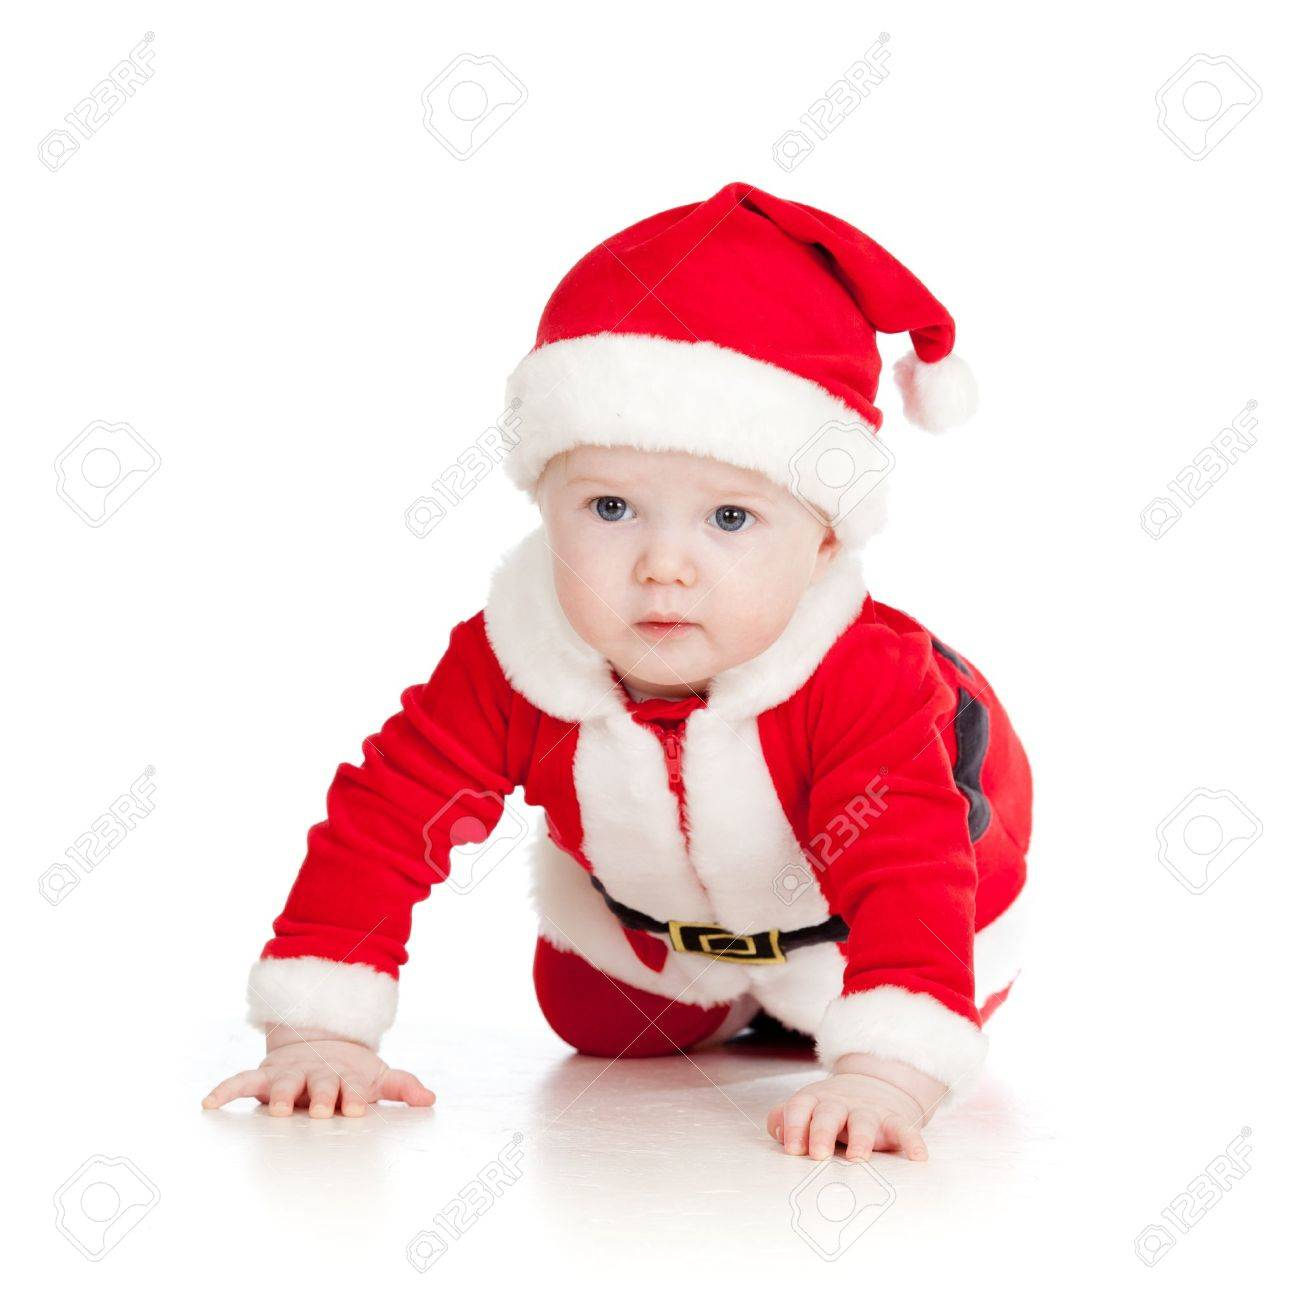 Baby Toddler Dressed As Santa Claus Over White